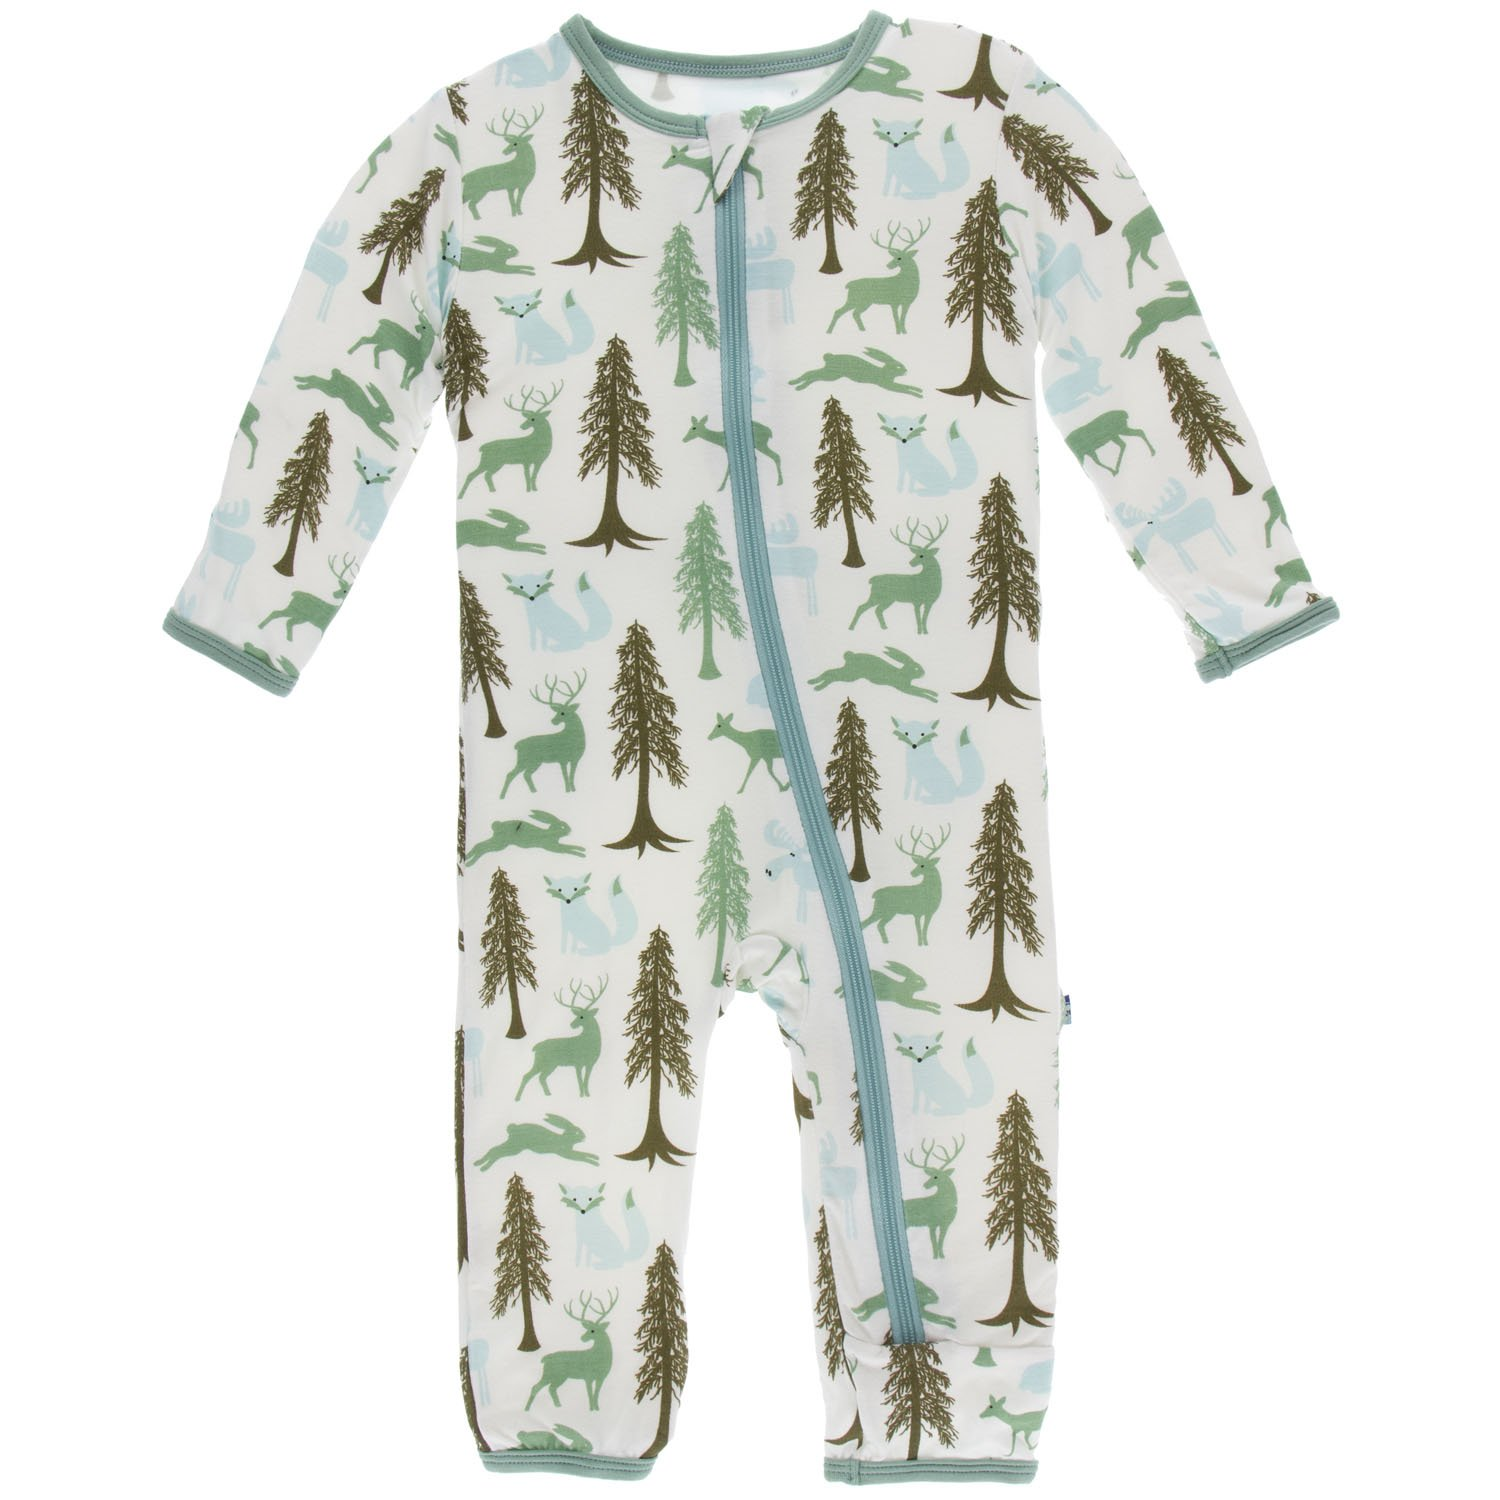 KicKee Pants Print Coverall with Zipper - Woodland Holiday